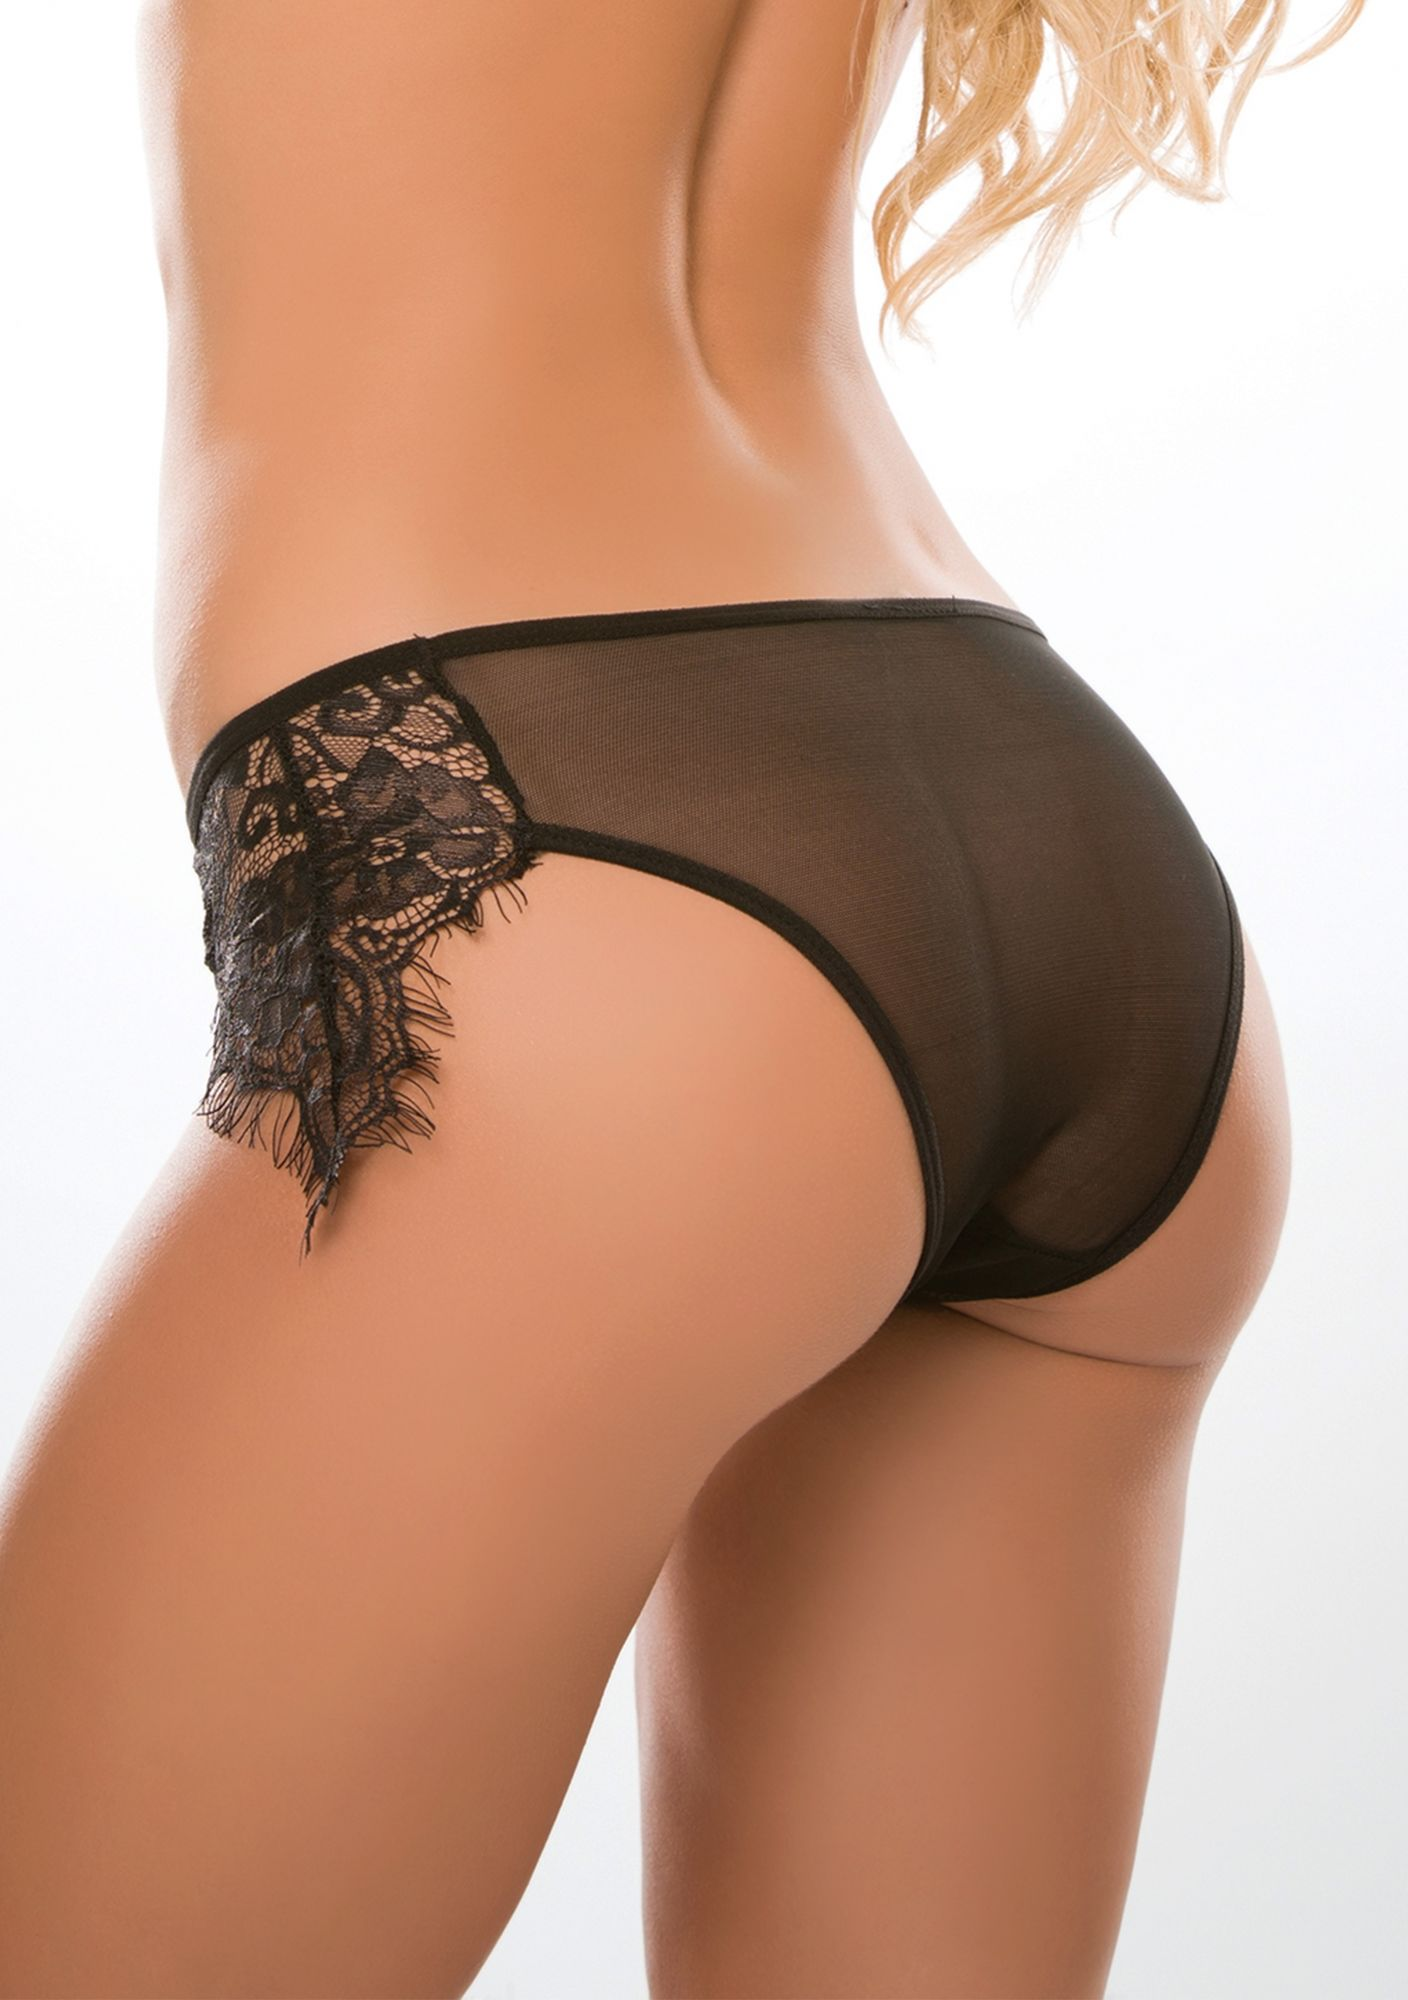 Allure Crotchless Lavish & Lace Panty Black